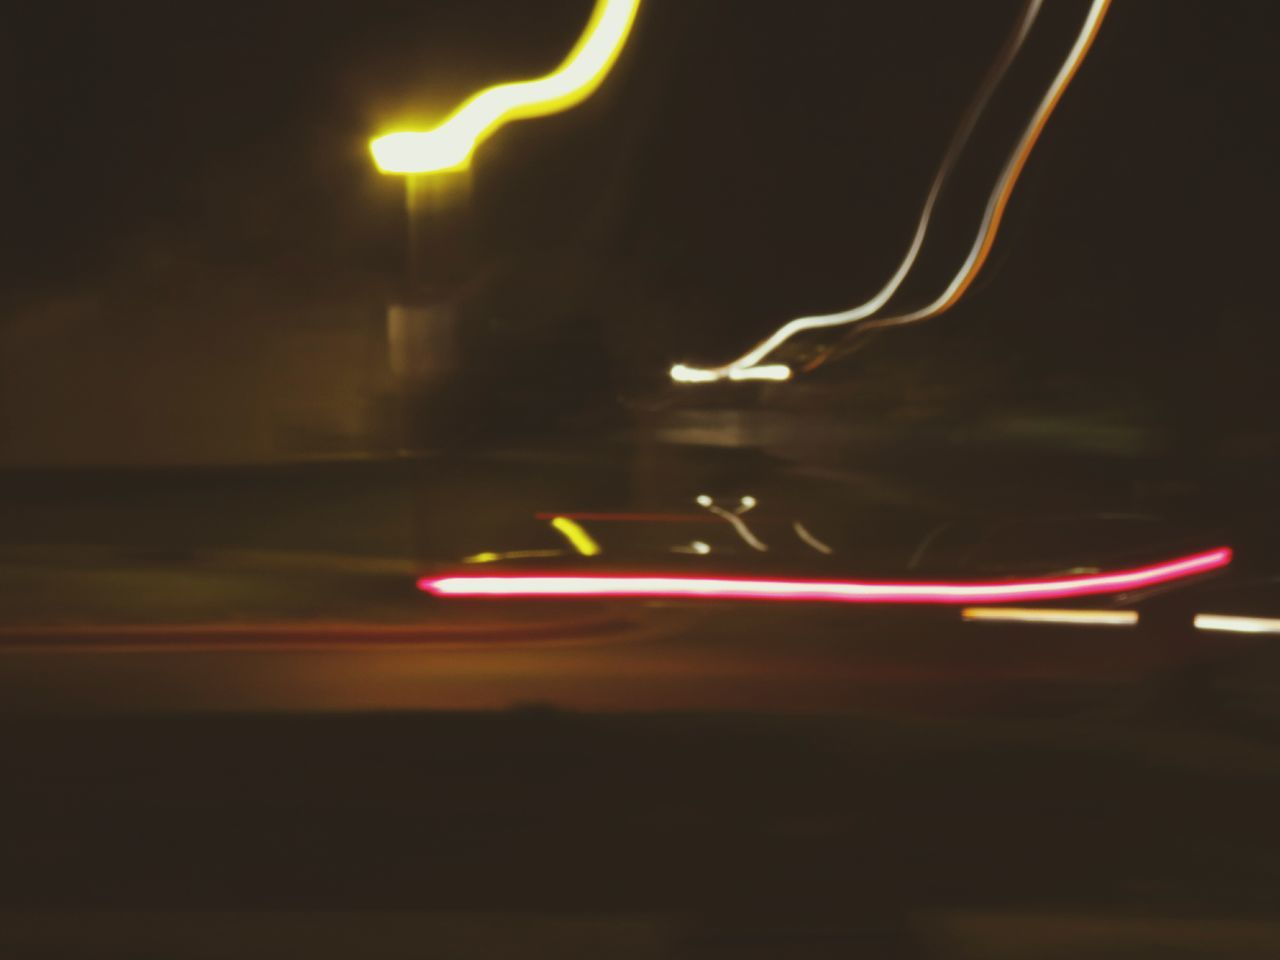 illuminated, night, glowing, lighting equipment, speed, light trail, long exposure, motion, technology, no people, blurred motion, electricity, close-up, indoors, neon